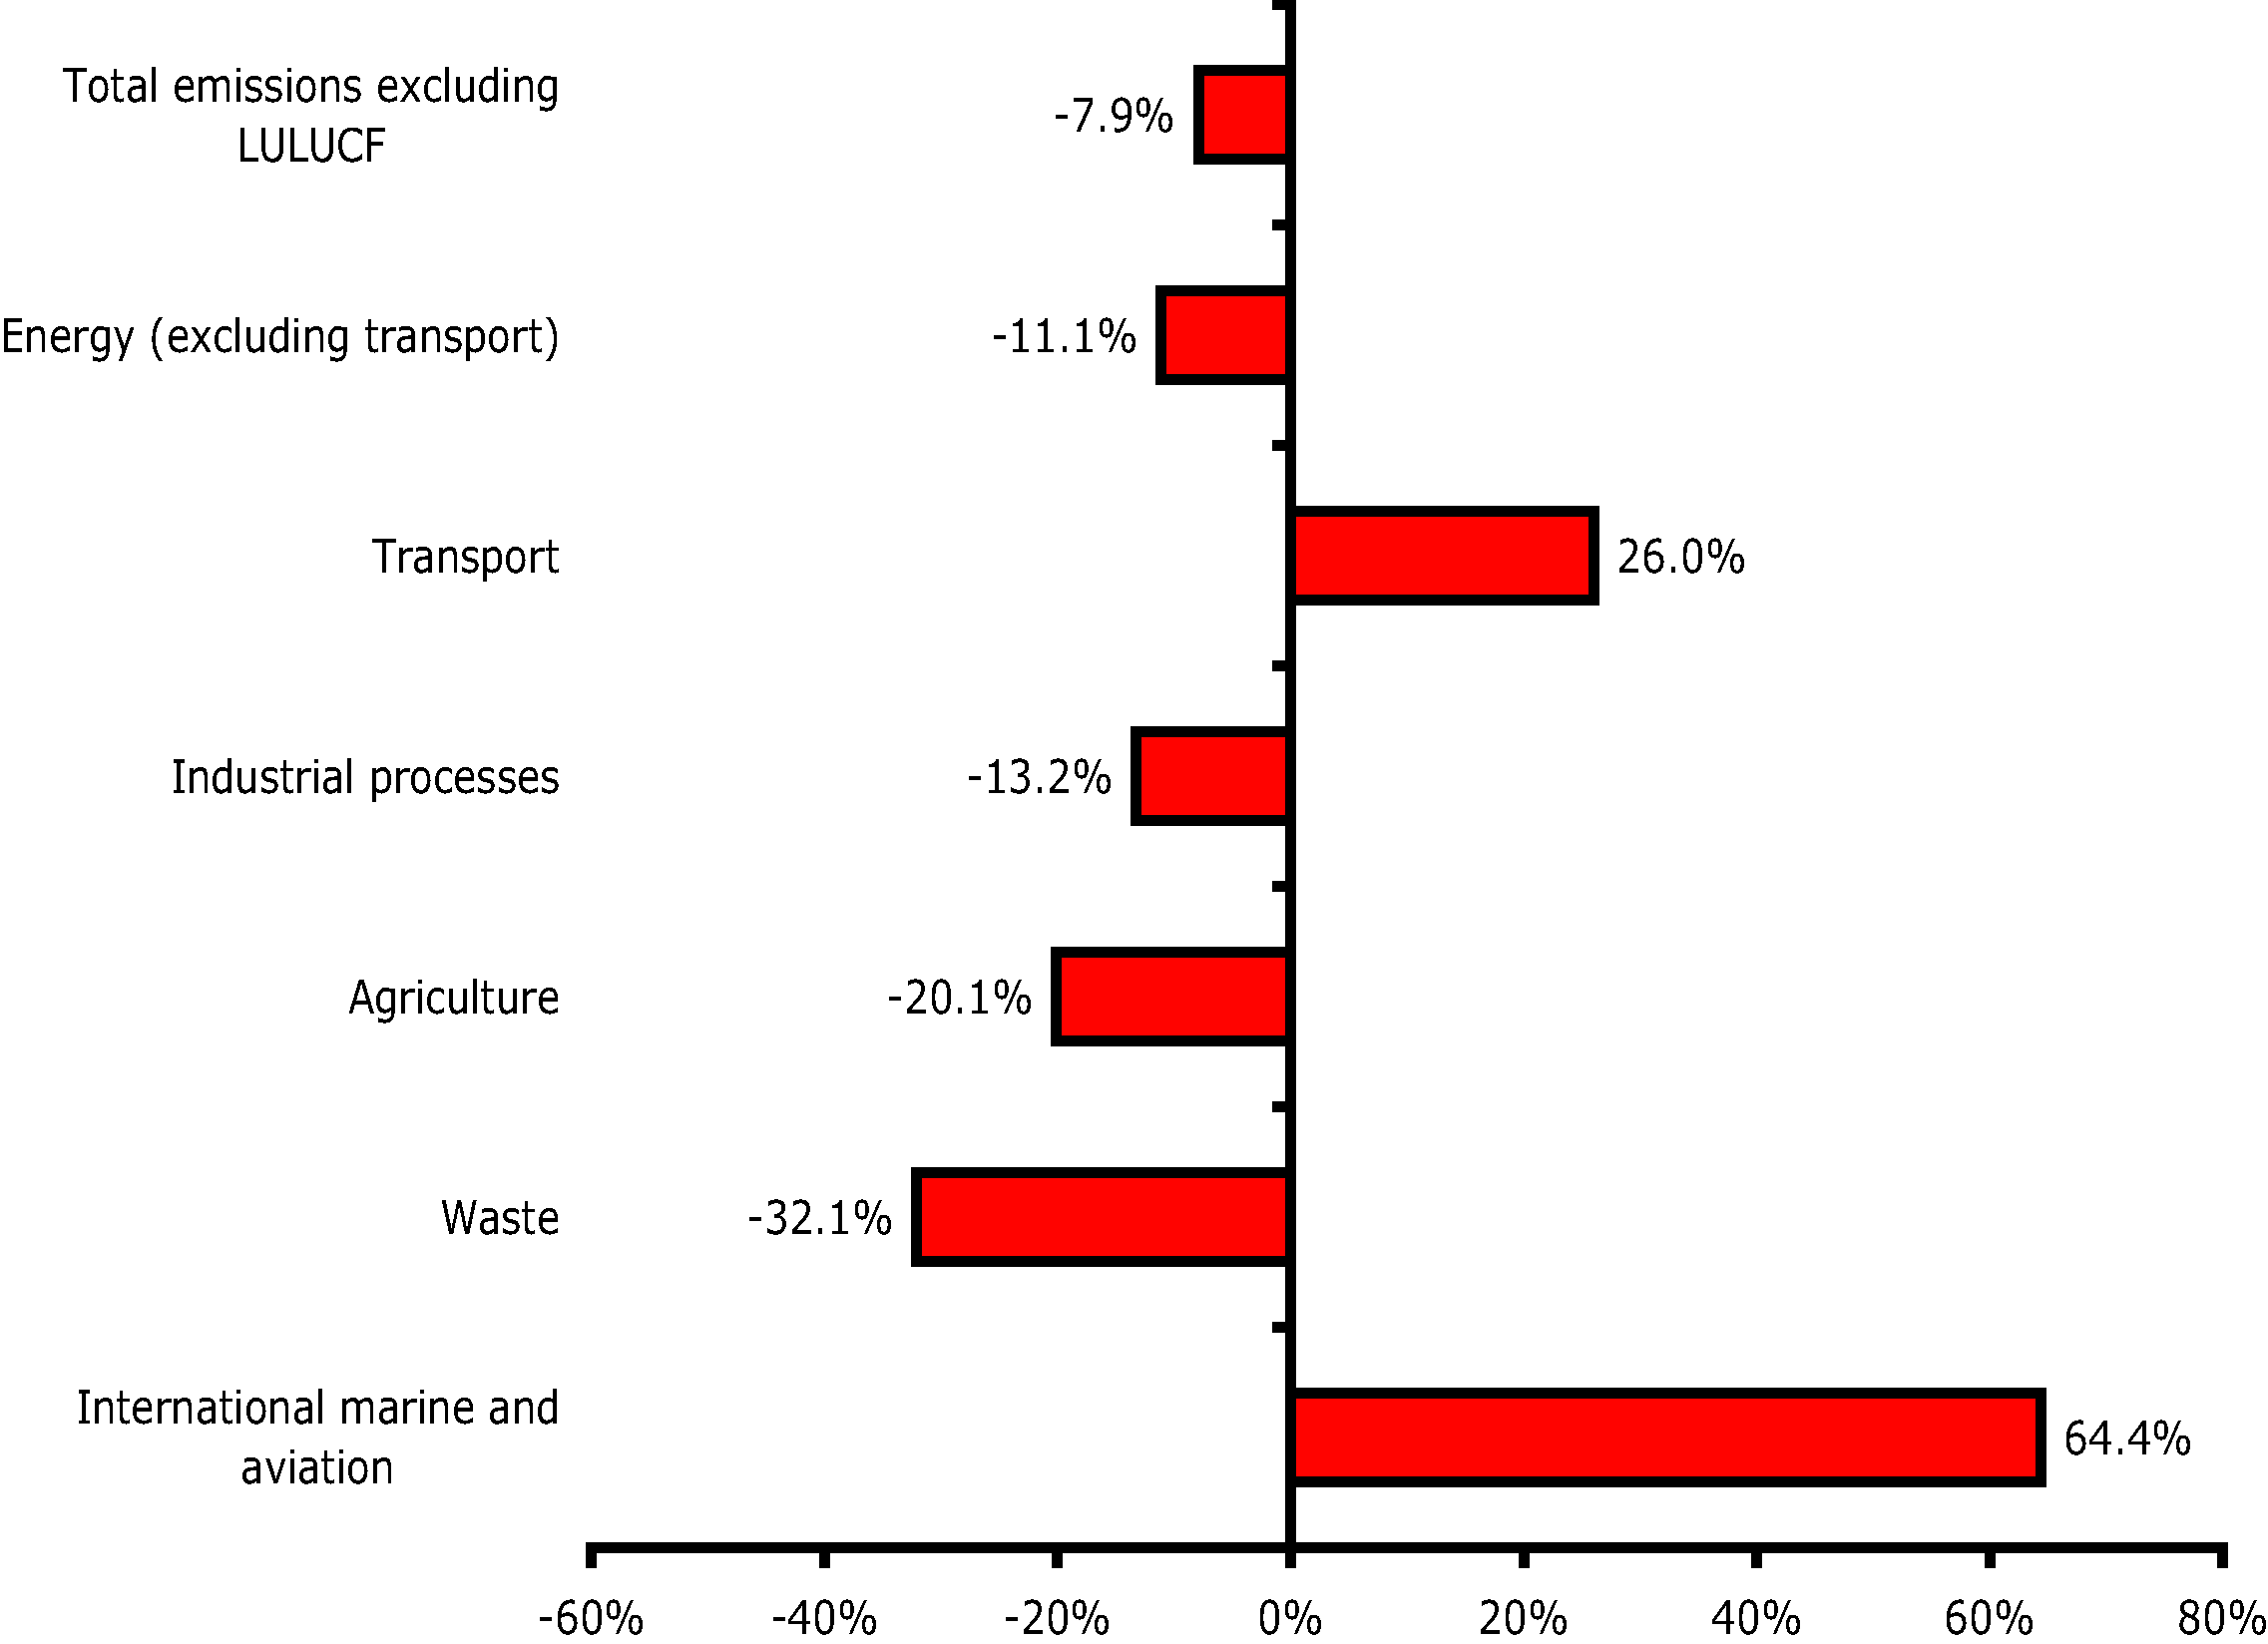 Changes in EU-27 greenhouse gas emissions by sector, 1990-2005